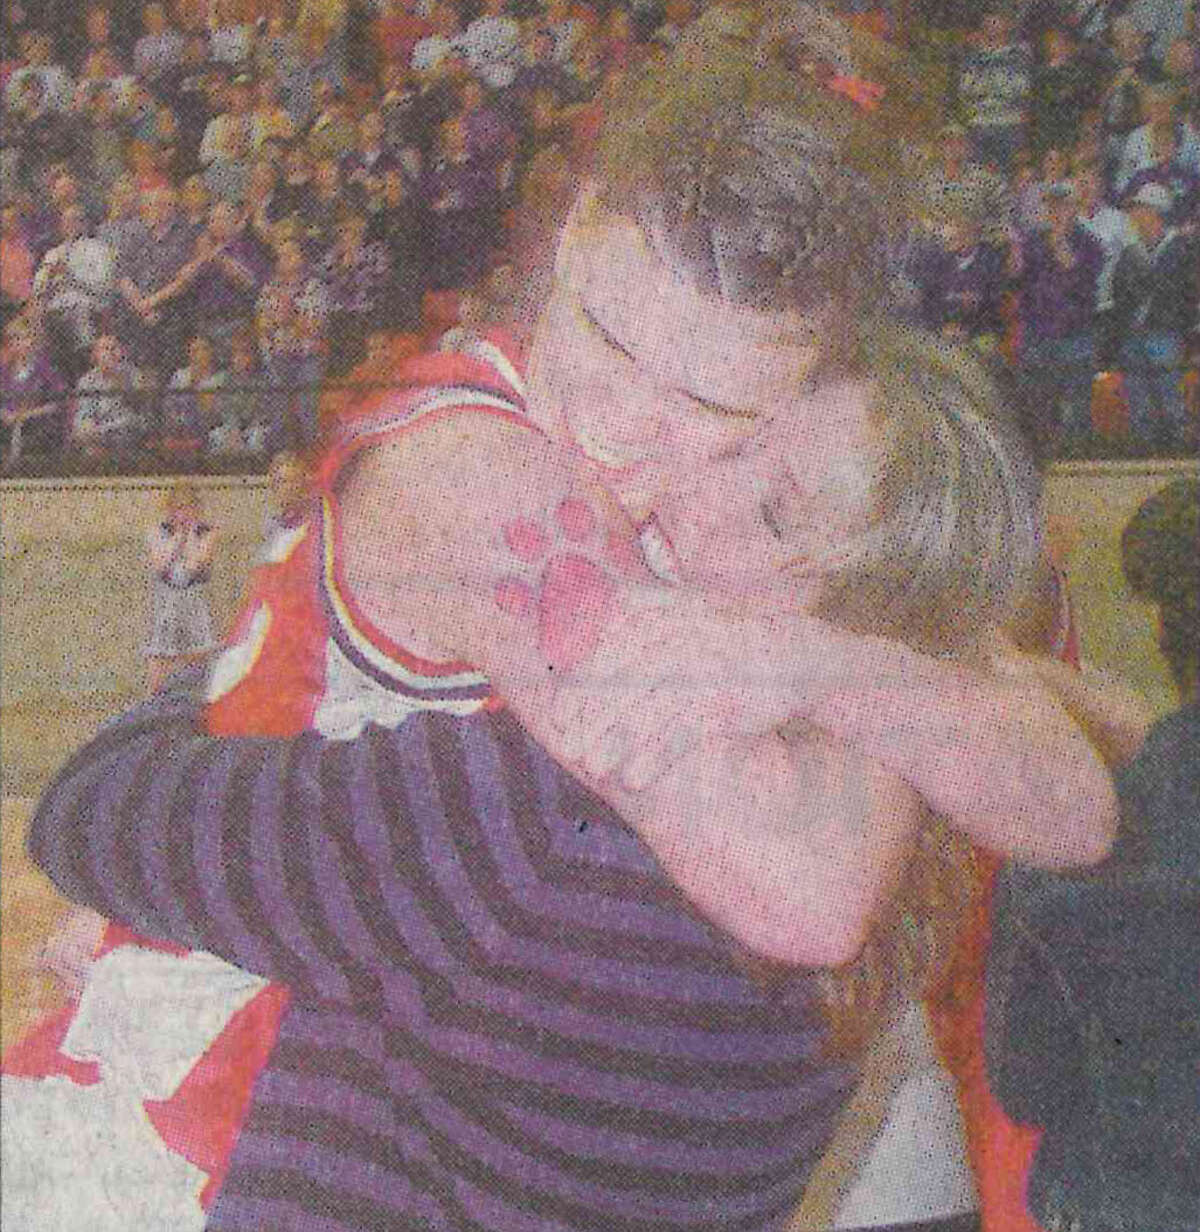 Stephanie Shaw and assistant coach Mandy Steen share a moment after beating Canyon in the 2001 region championship game.